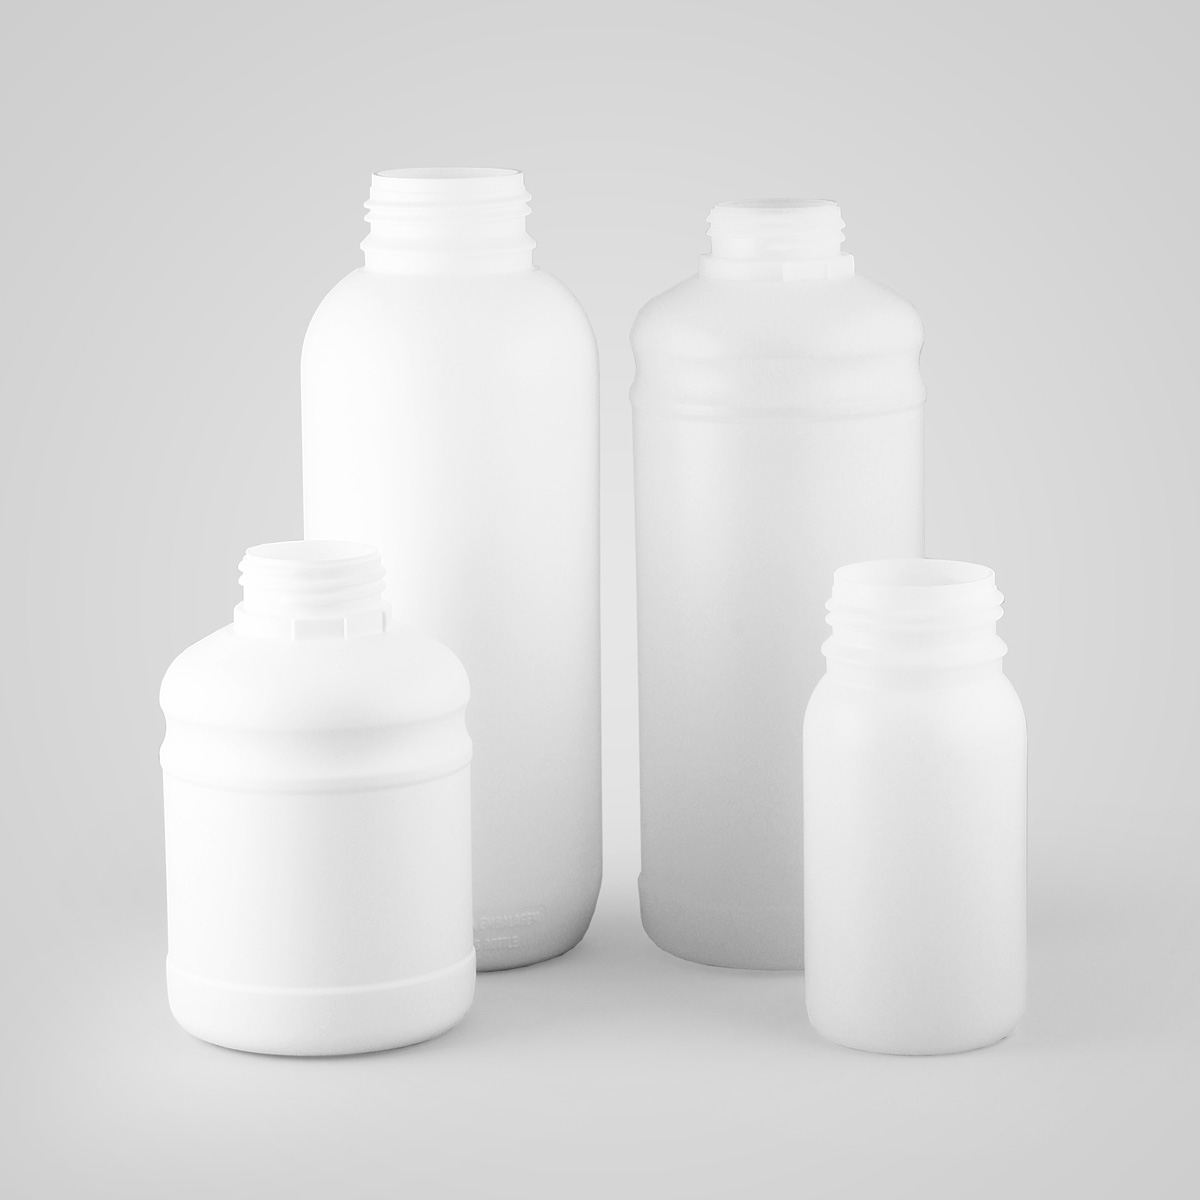 Solvent Resistant Containers